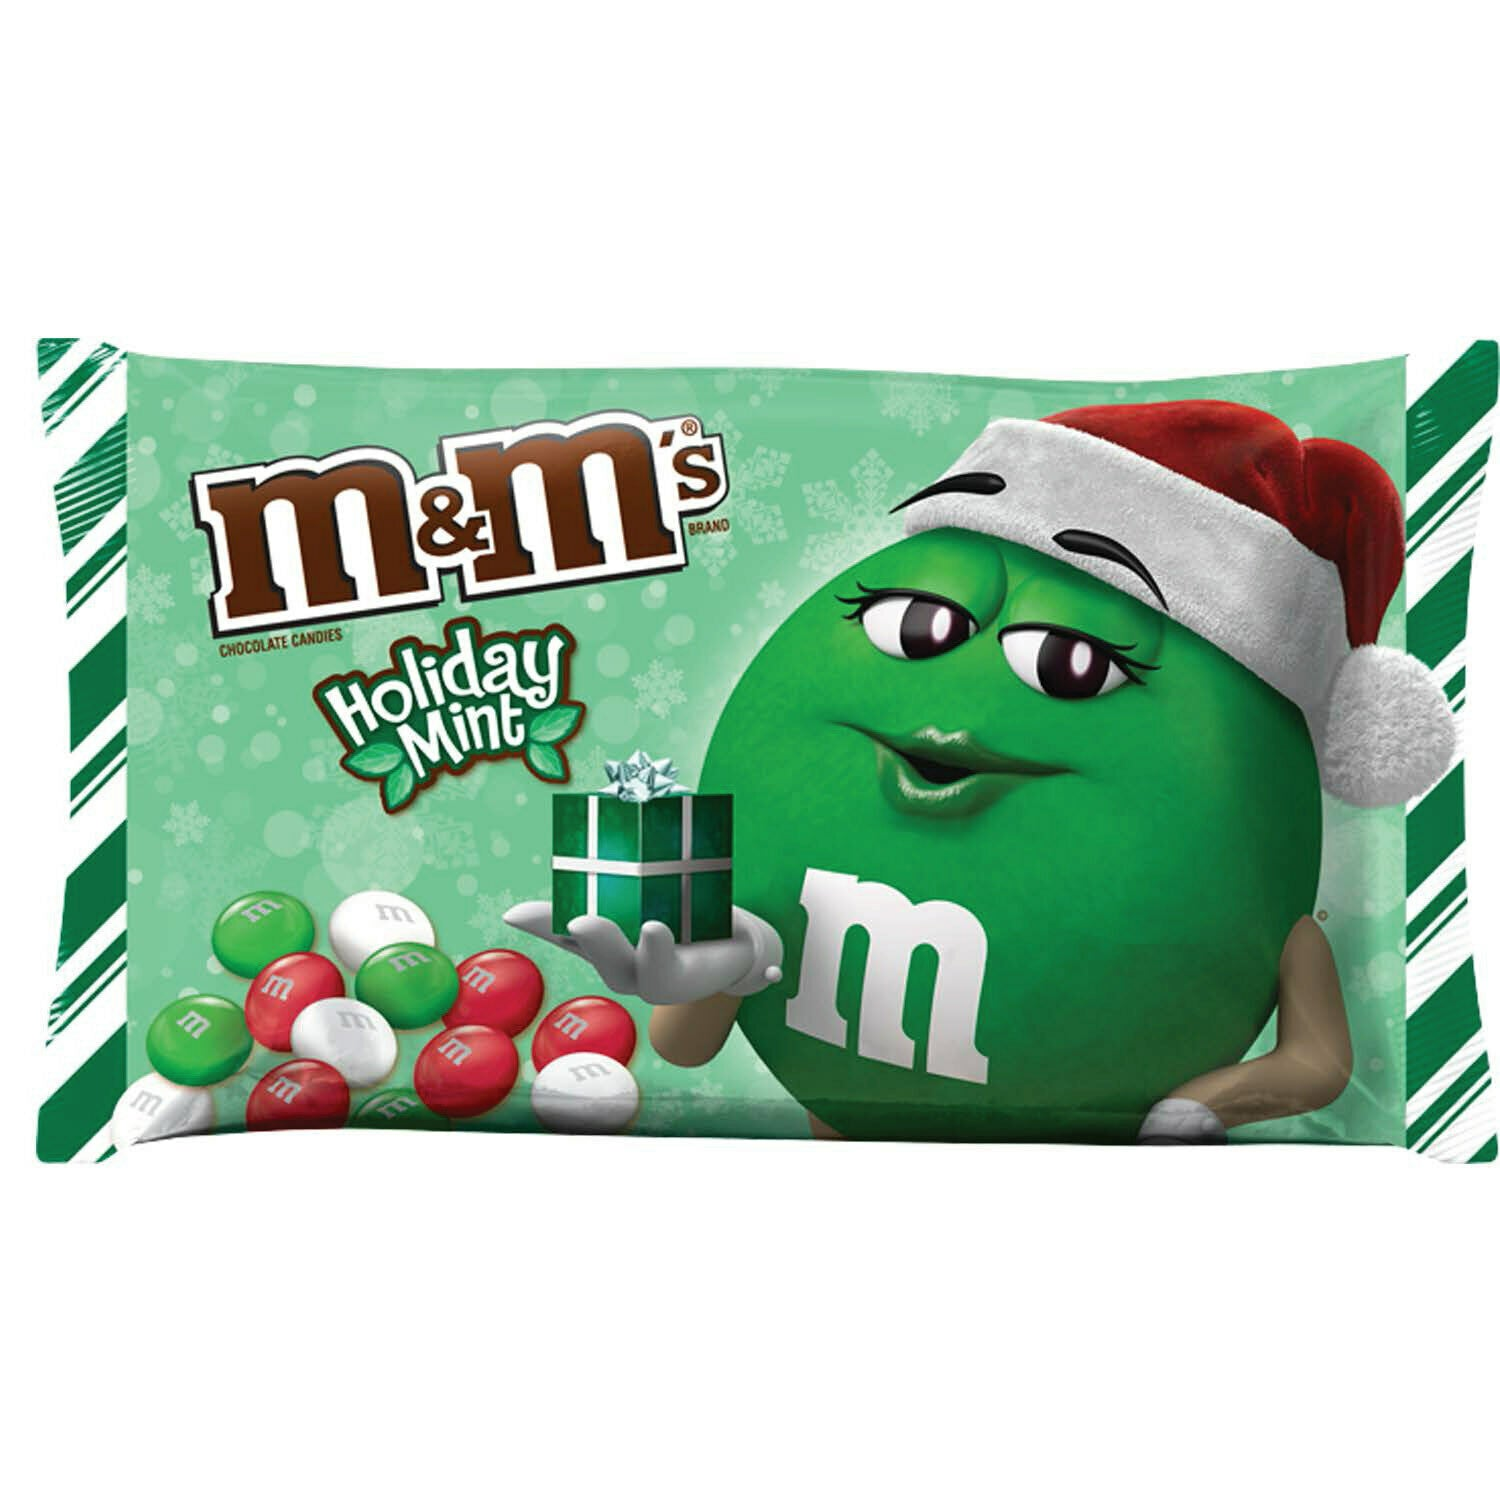 M&M's Holiday Mint Chocolate Candy, 9.2 Oz.